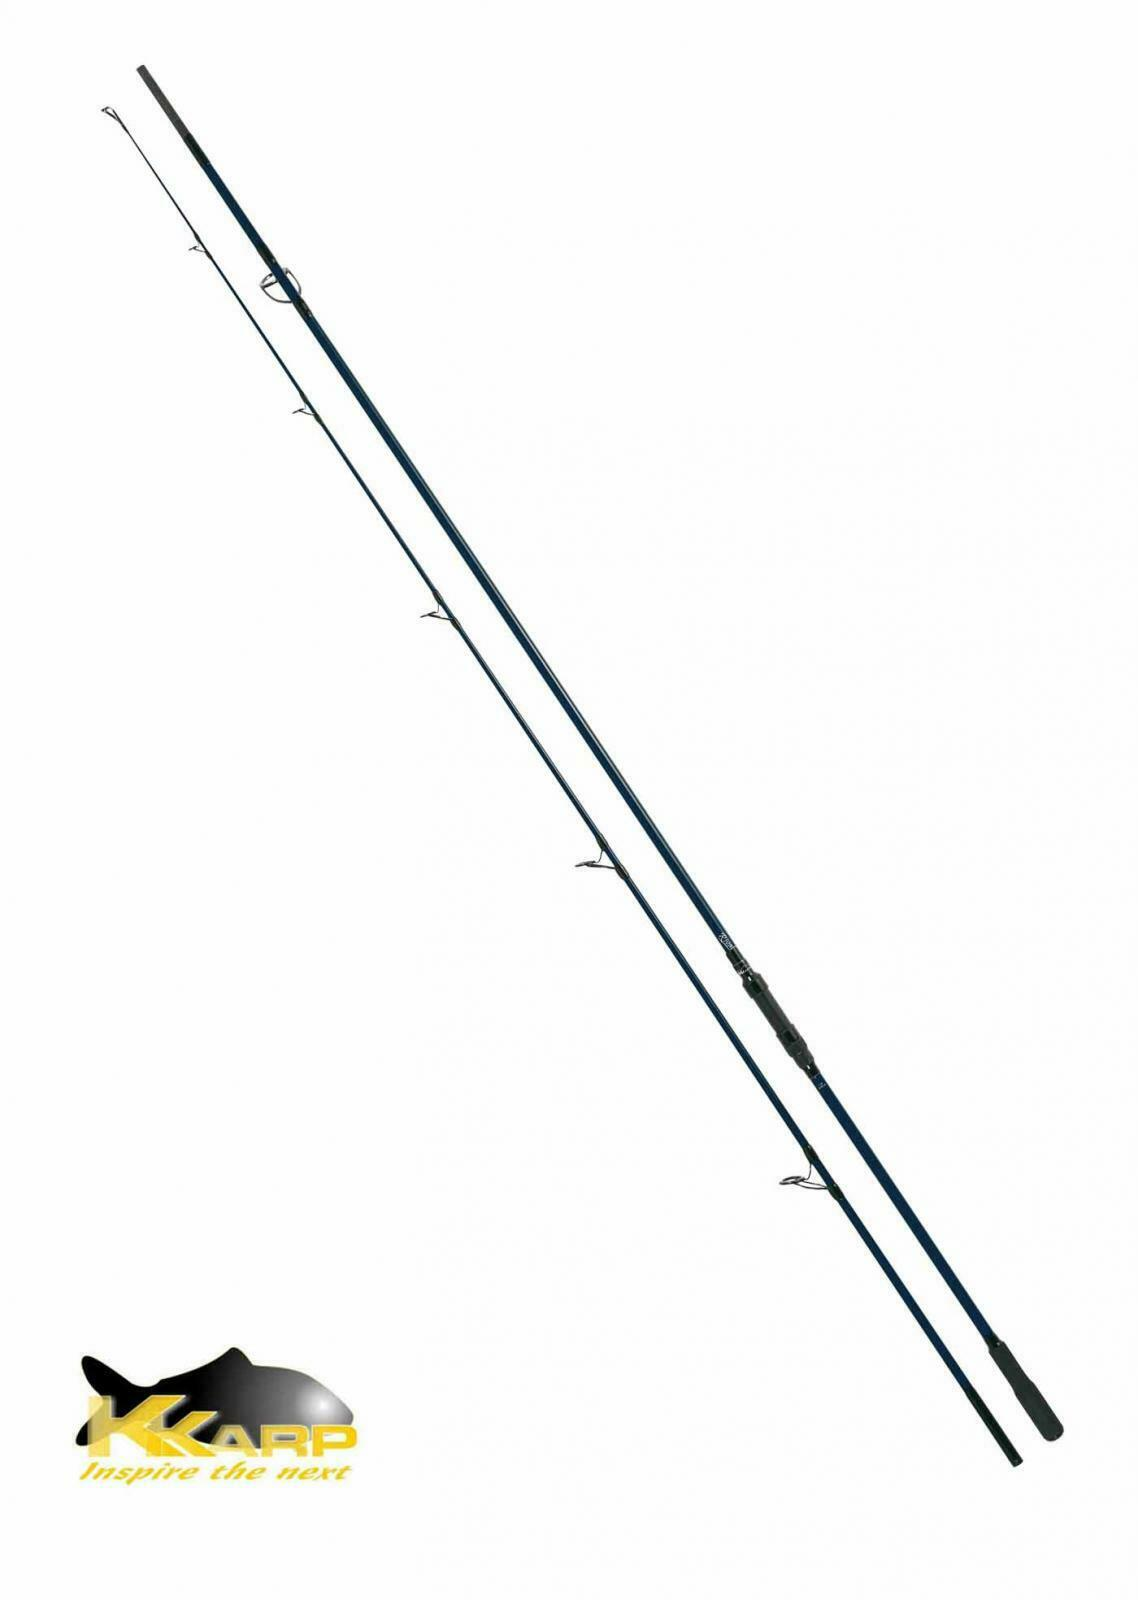 Canna Kkarp Rival 3.00 Lbs 360 - 390 cm Pesca Carpfishing Carbonio Due Sezi FEU